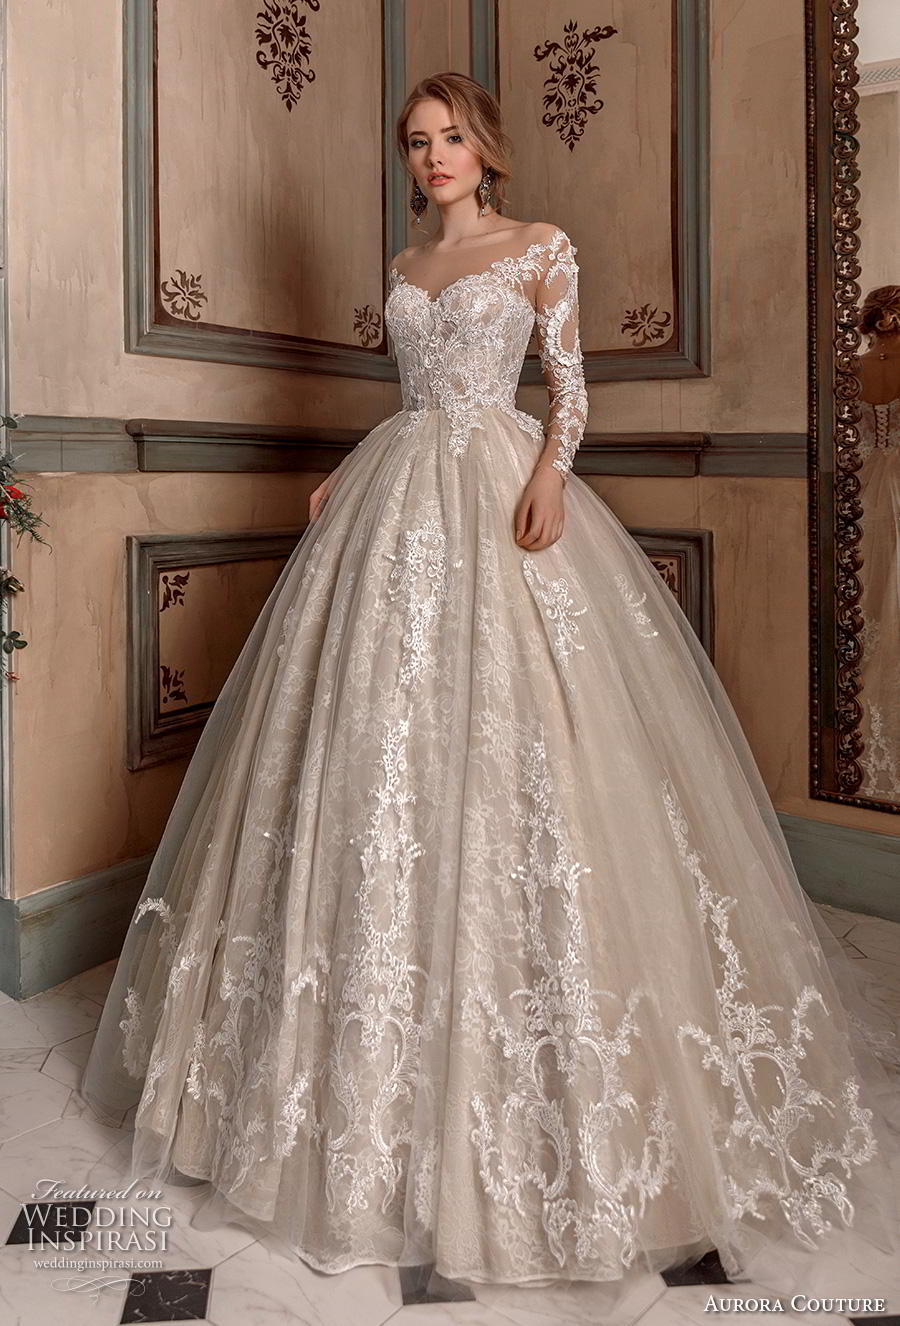 aurora couture 2019 bridal long sleeves illiusion off the shoulder sweetheart neckline full embellishment princess ball gown a  line wedding dress mid back chapel train (5) mv